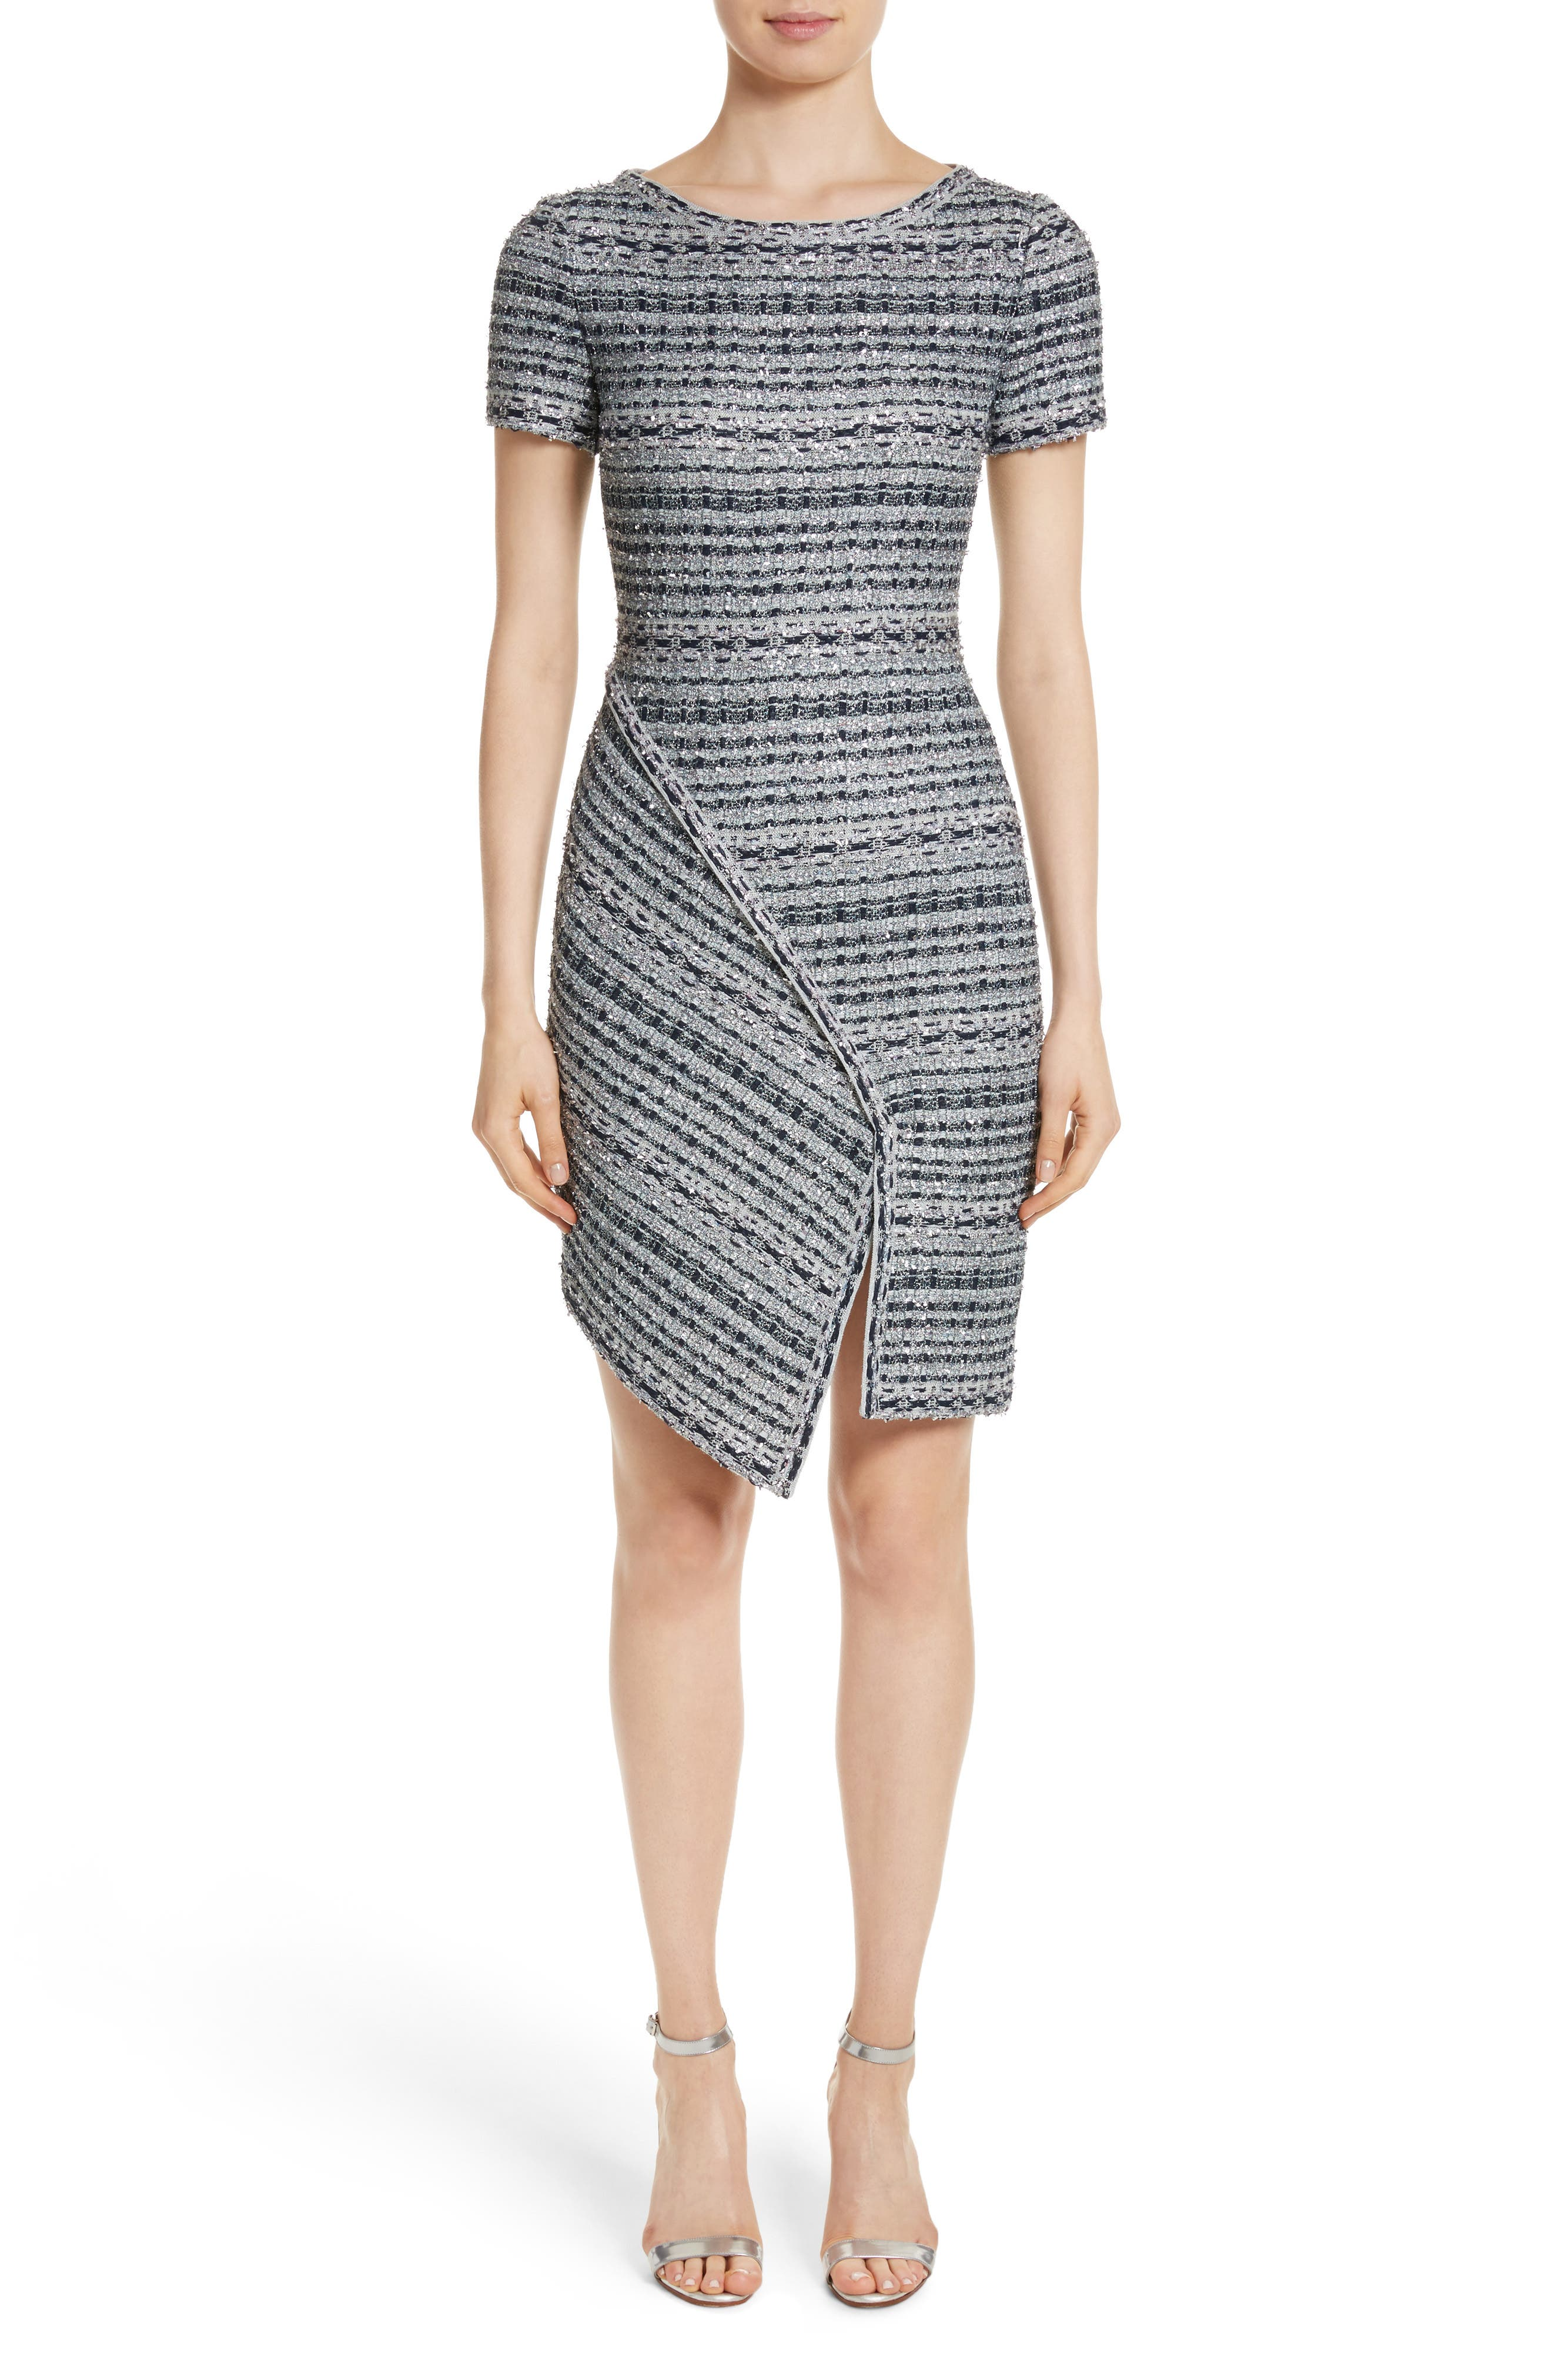 St. John Collection Metallic Jacquard Dress